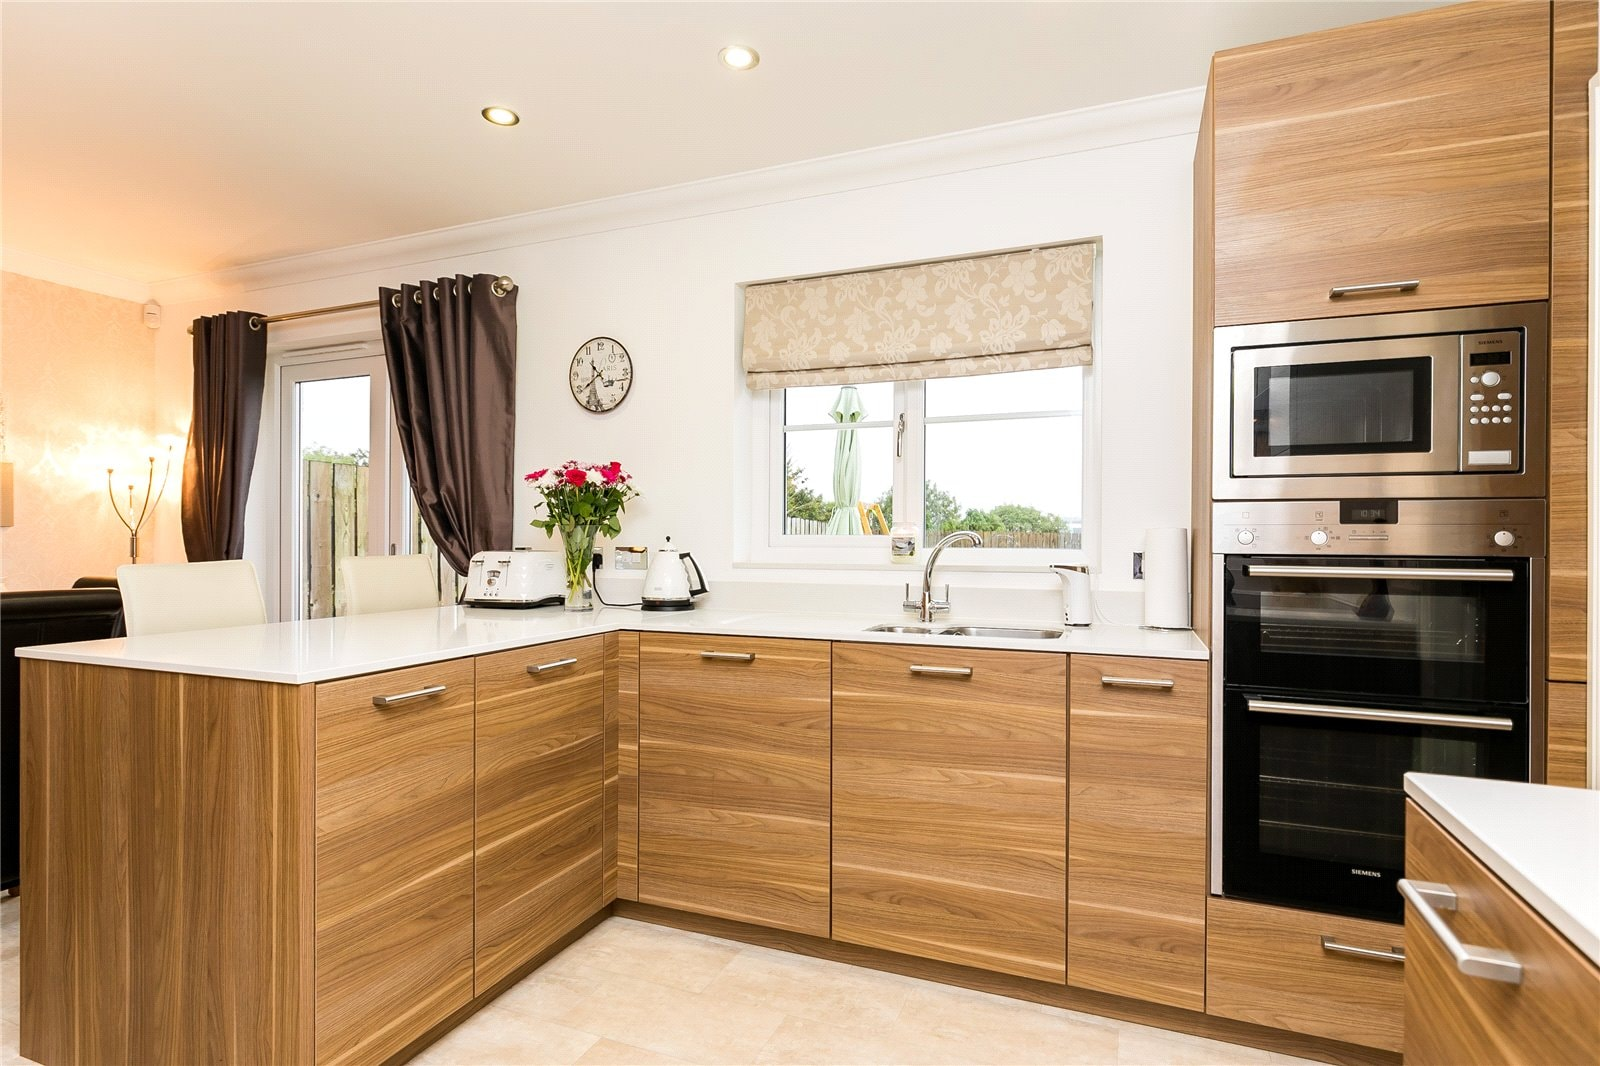 3 Deeside View kitchen